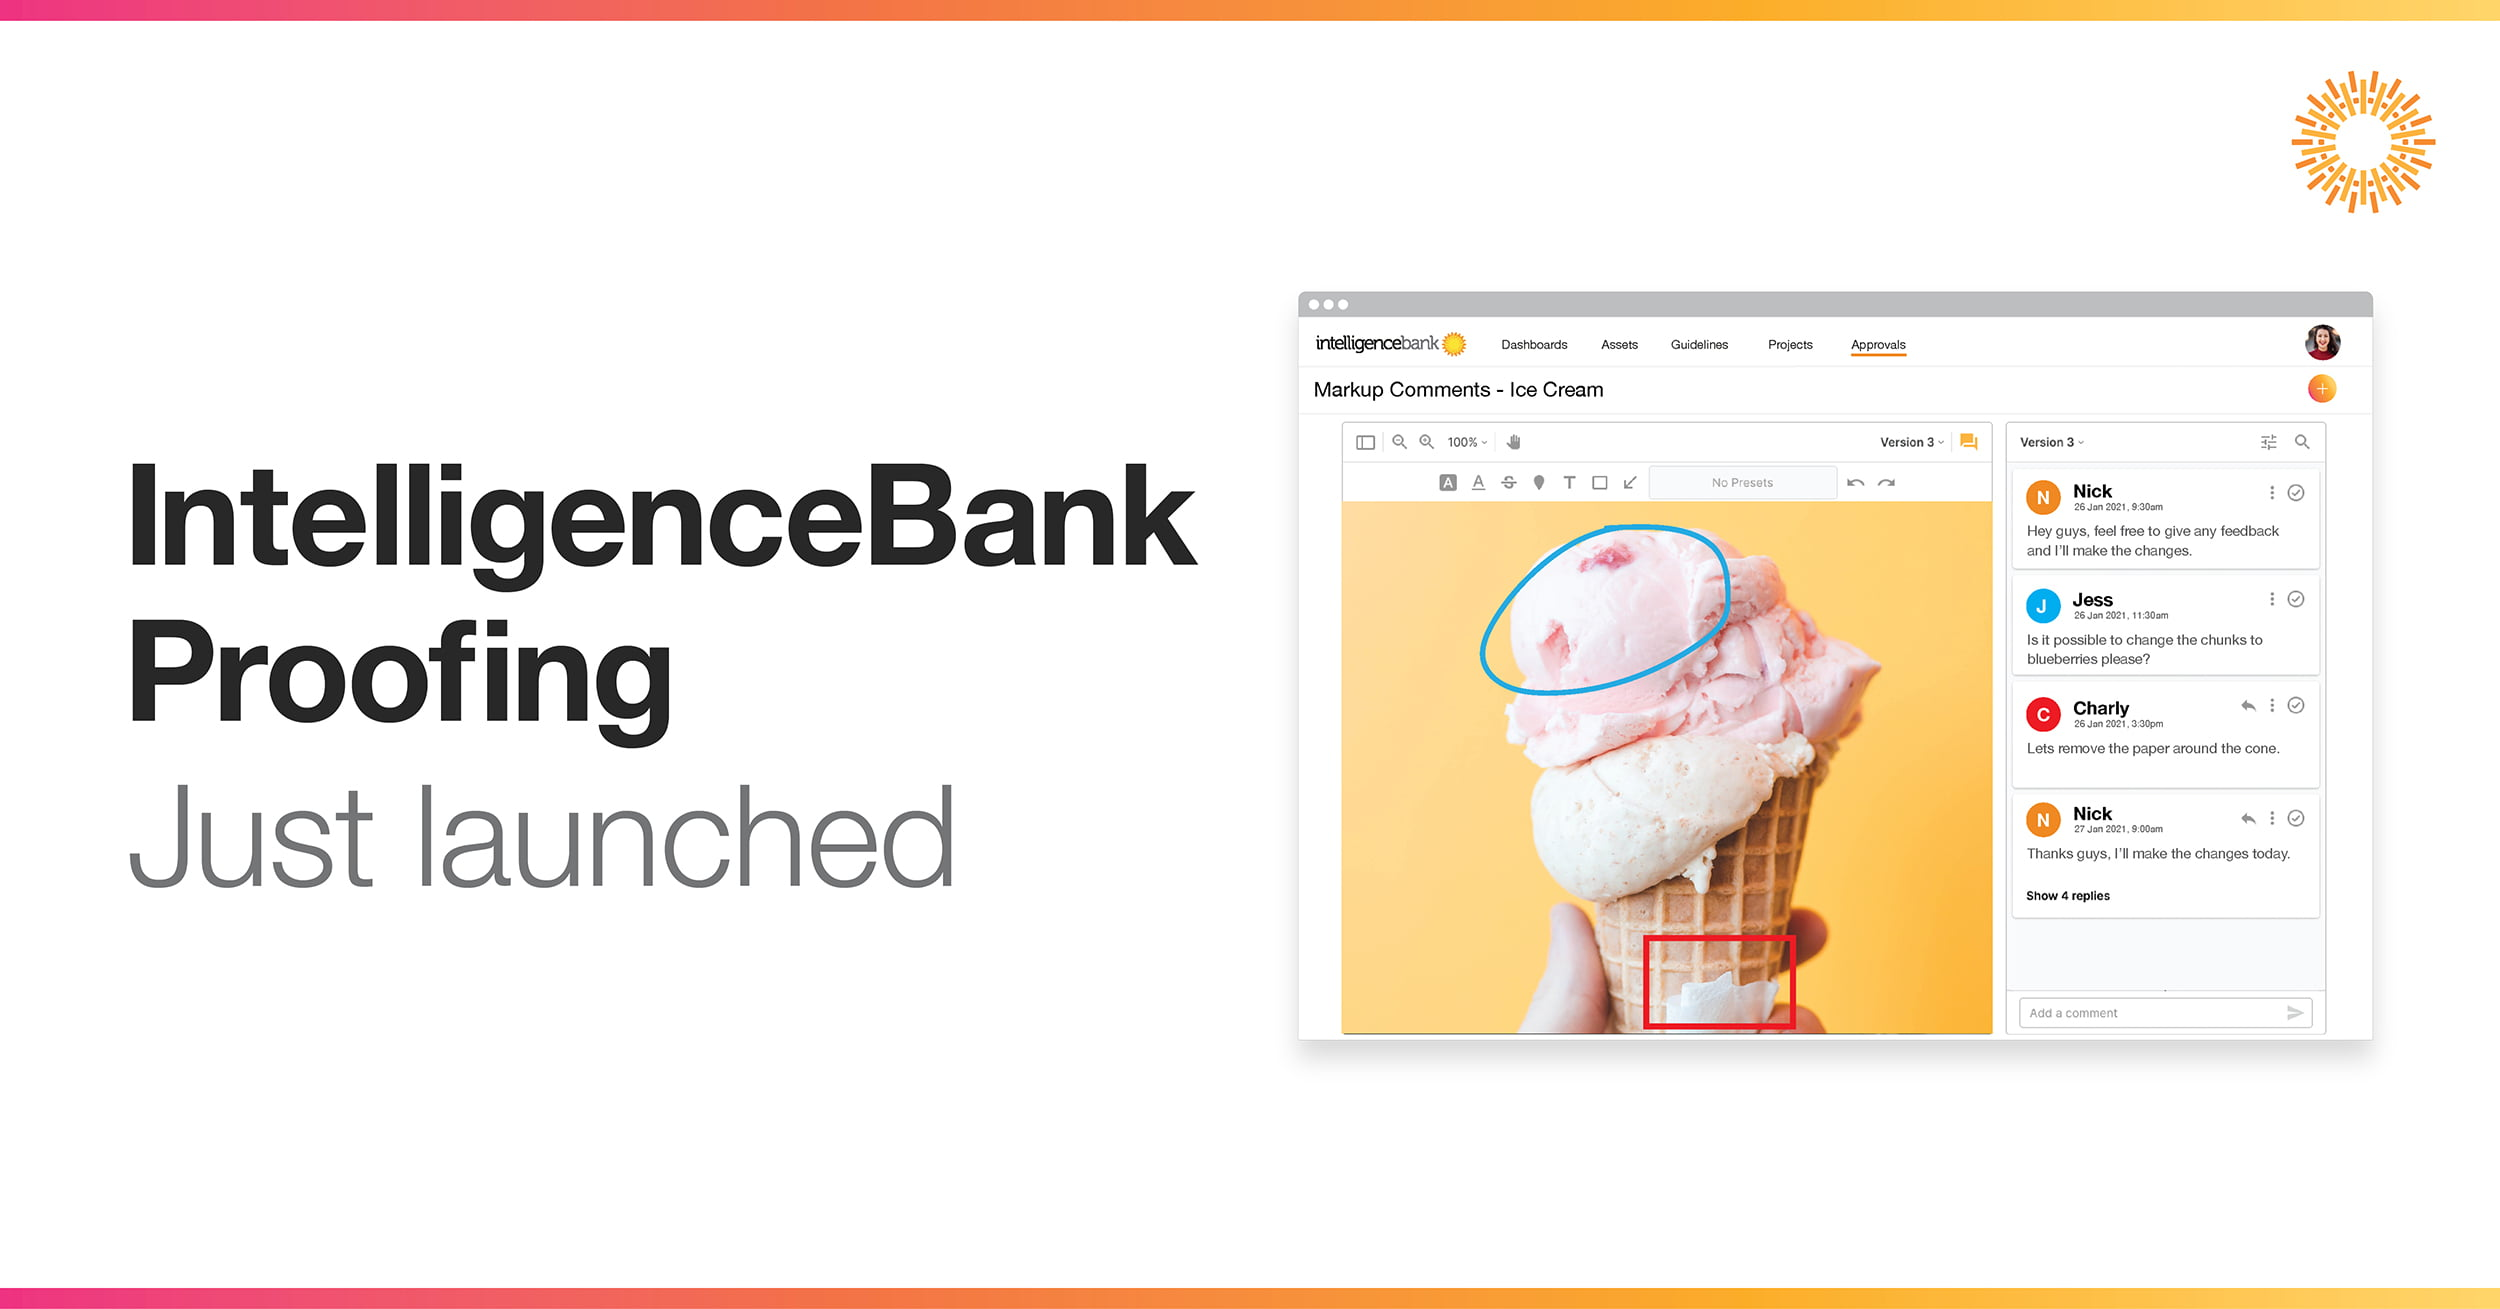 IntelligenceBank Launches Upgrades to Its Online Proofing and Approvals